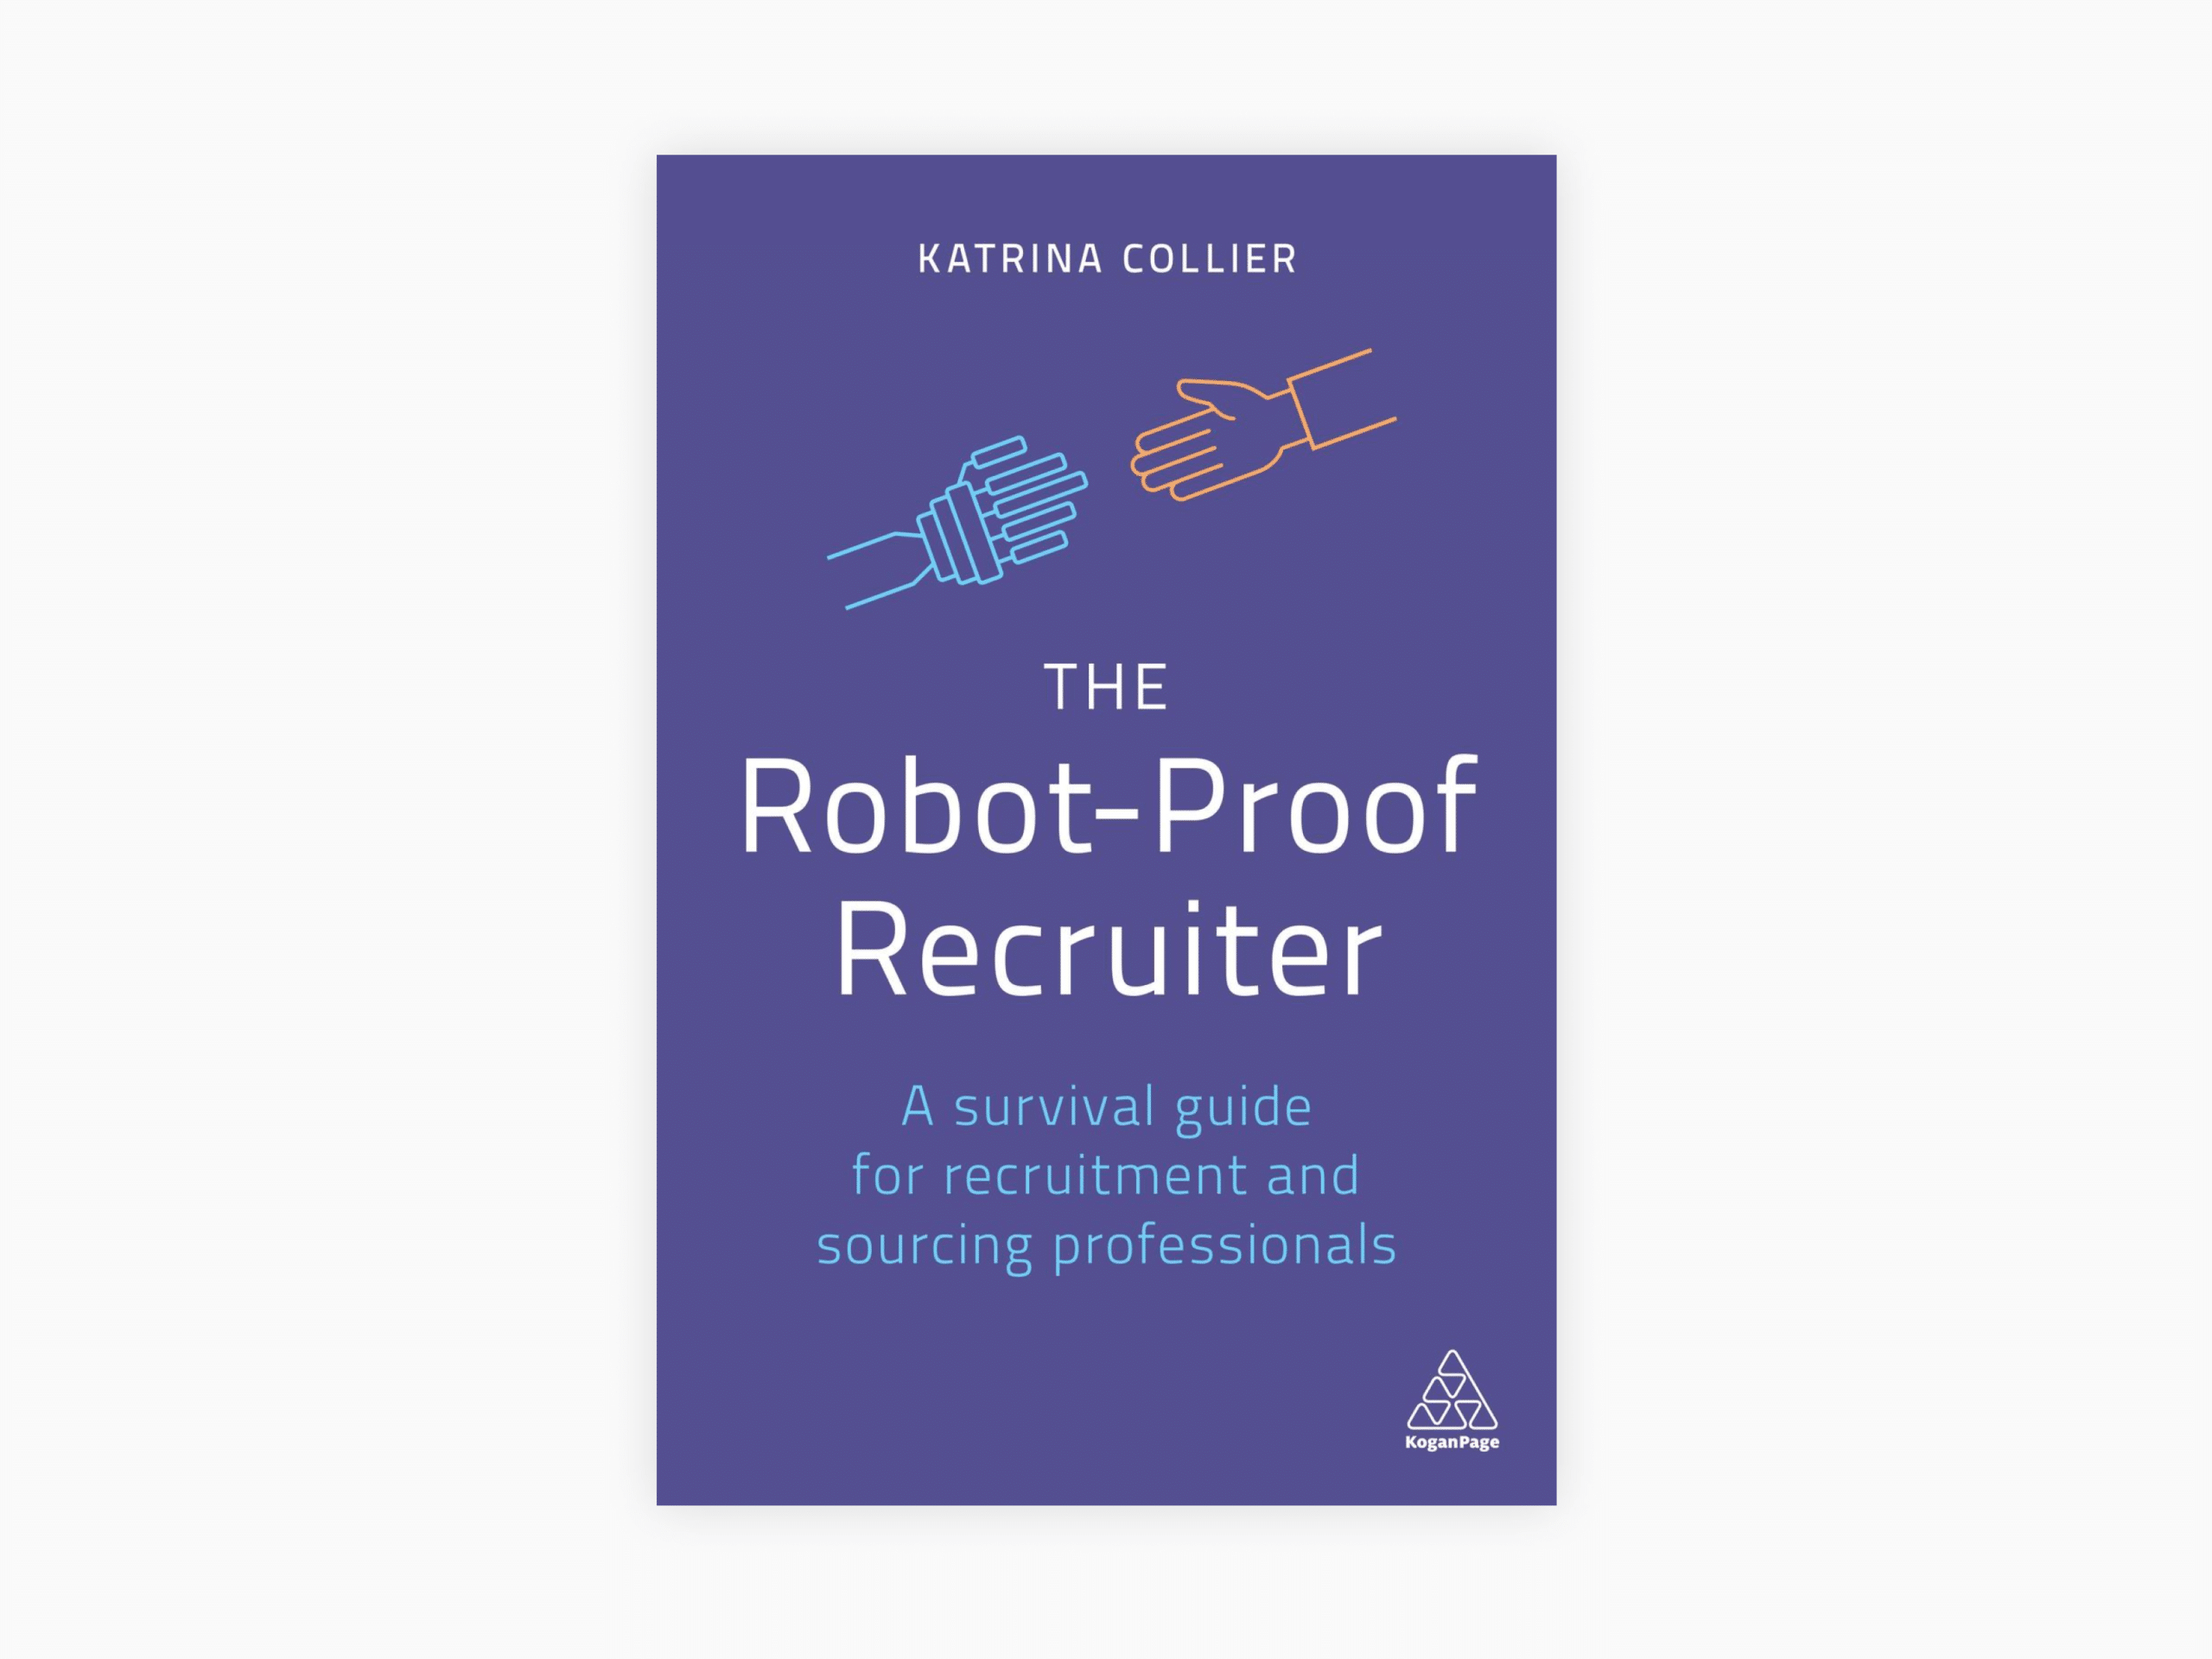 Book cover of the robot-proof recruiter: a survival guide for recruitment and sourcing professionals by katrina collier